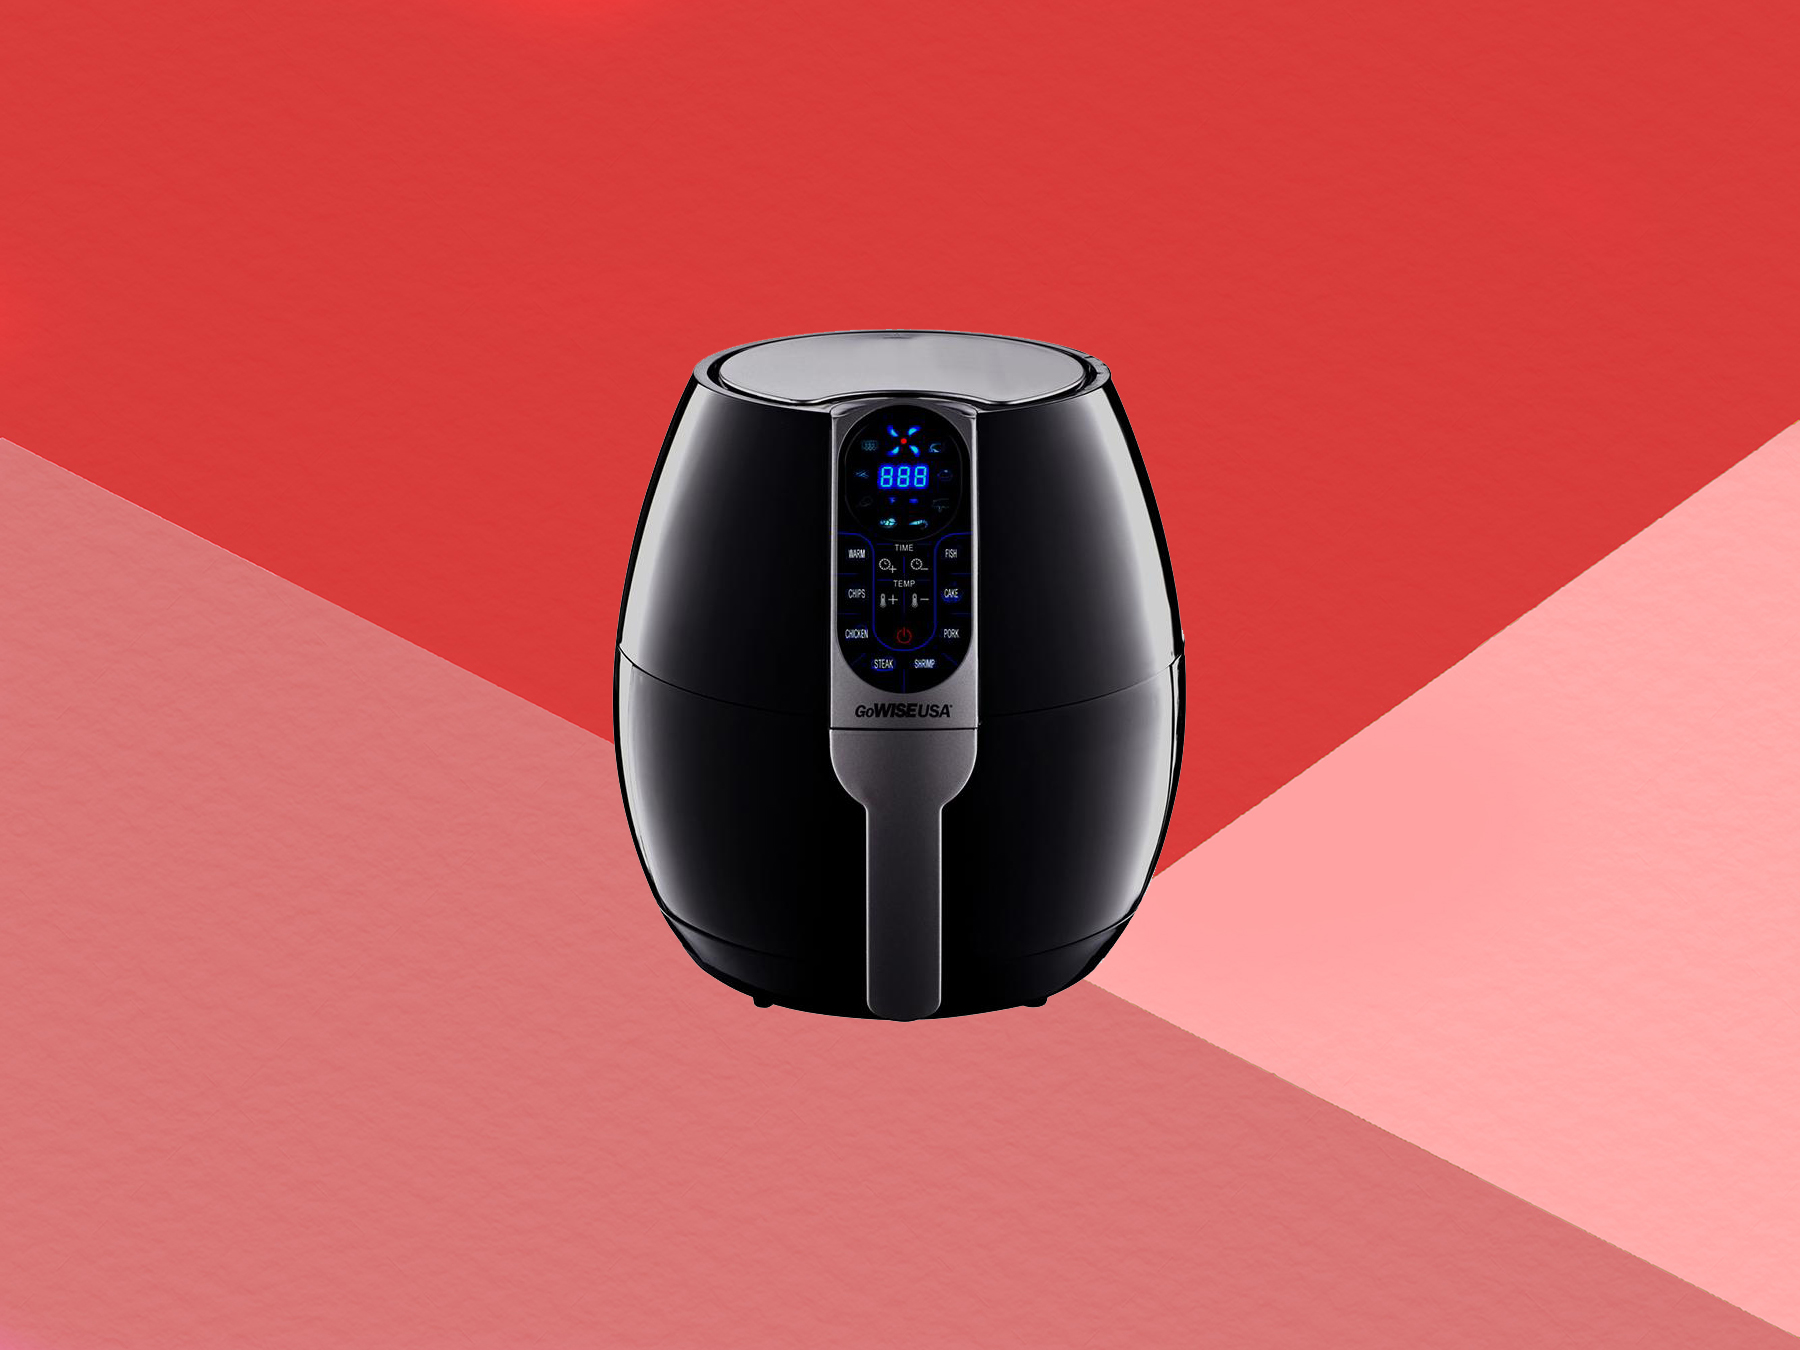 Amazon Shoppers Are Obsessed With This Air Fryer—And It's 43% Off Right Now